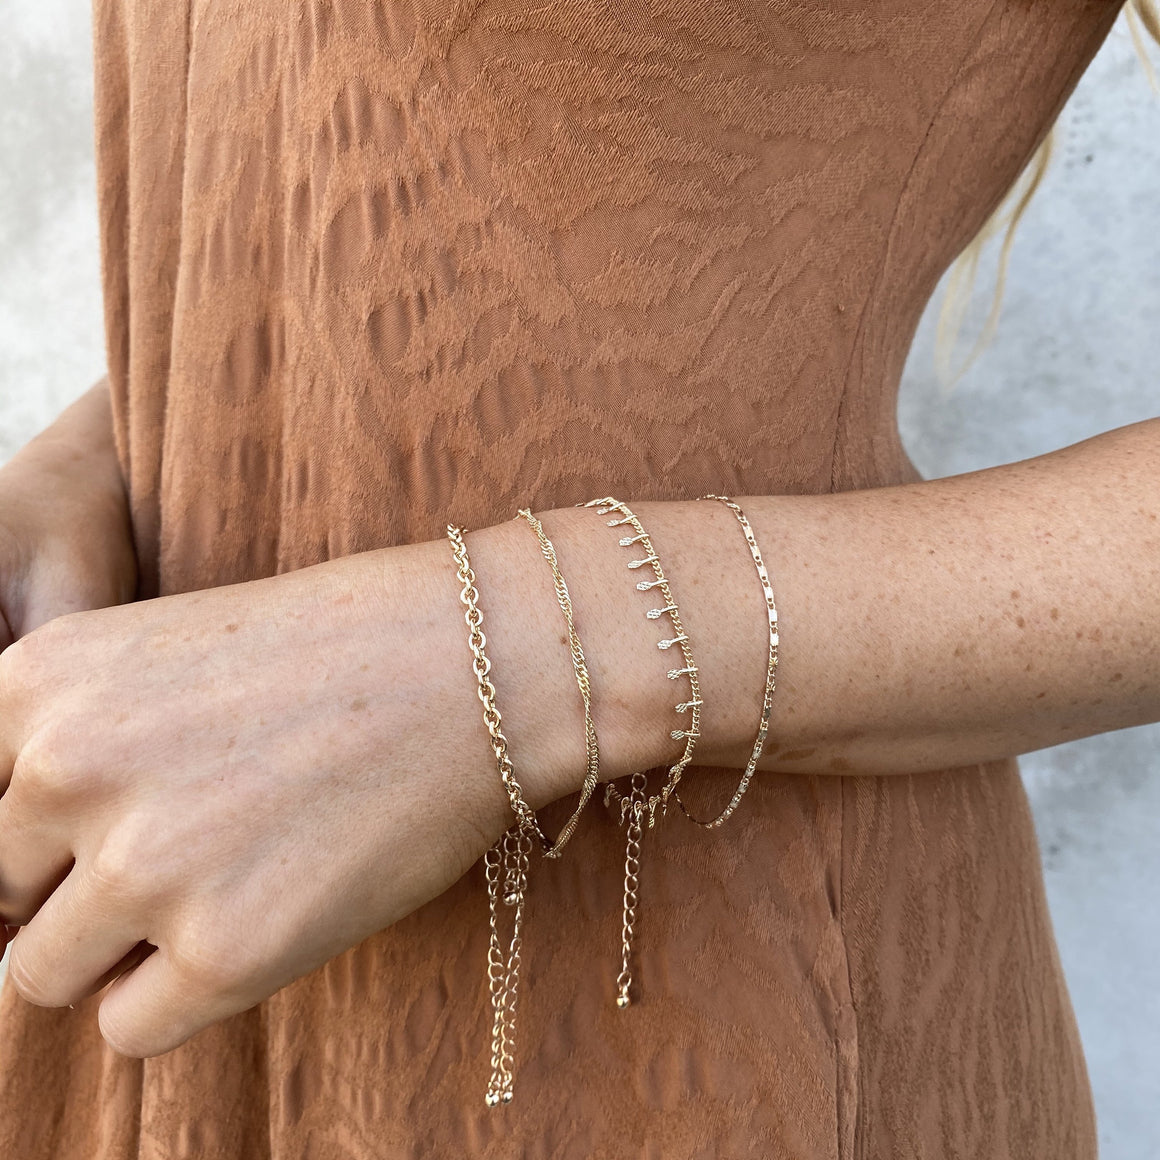 Endless Possibilities Gold Bracelet Set - Dainty Hooligan